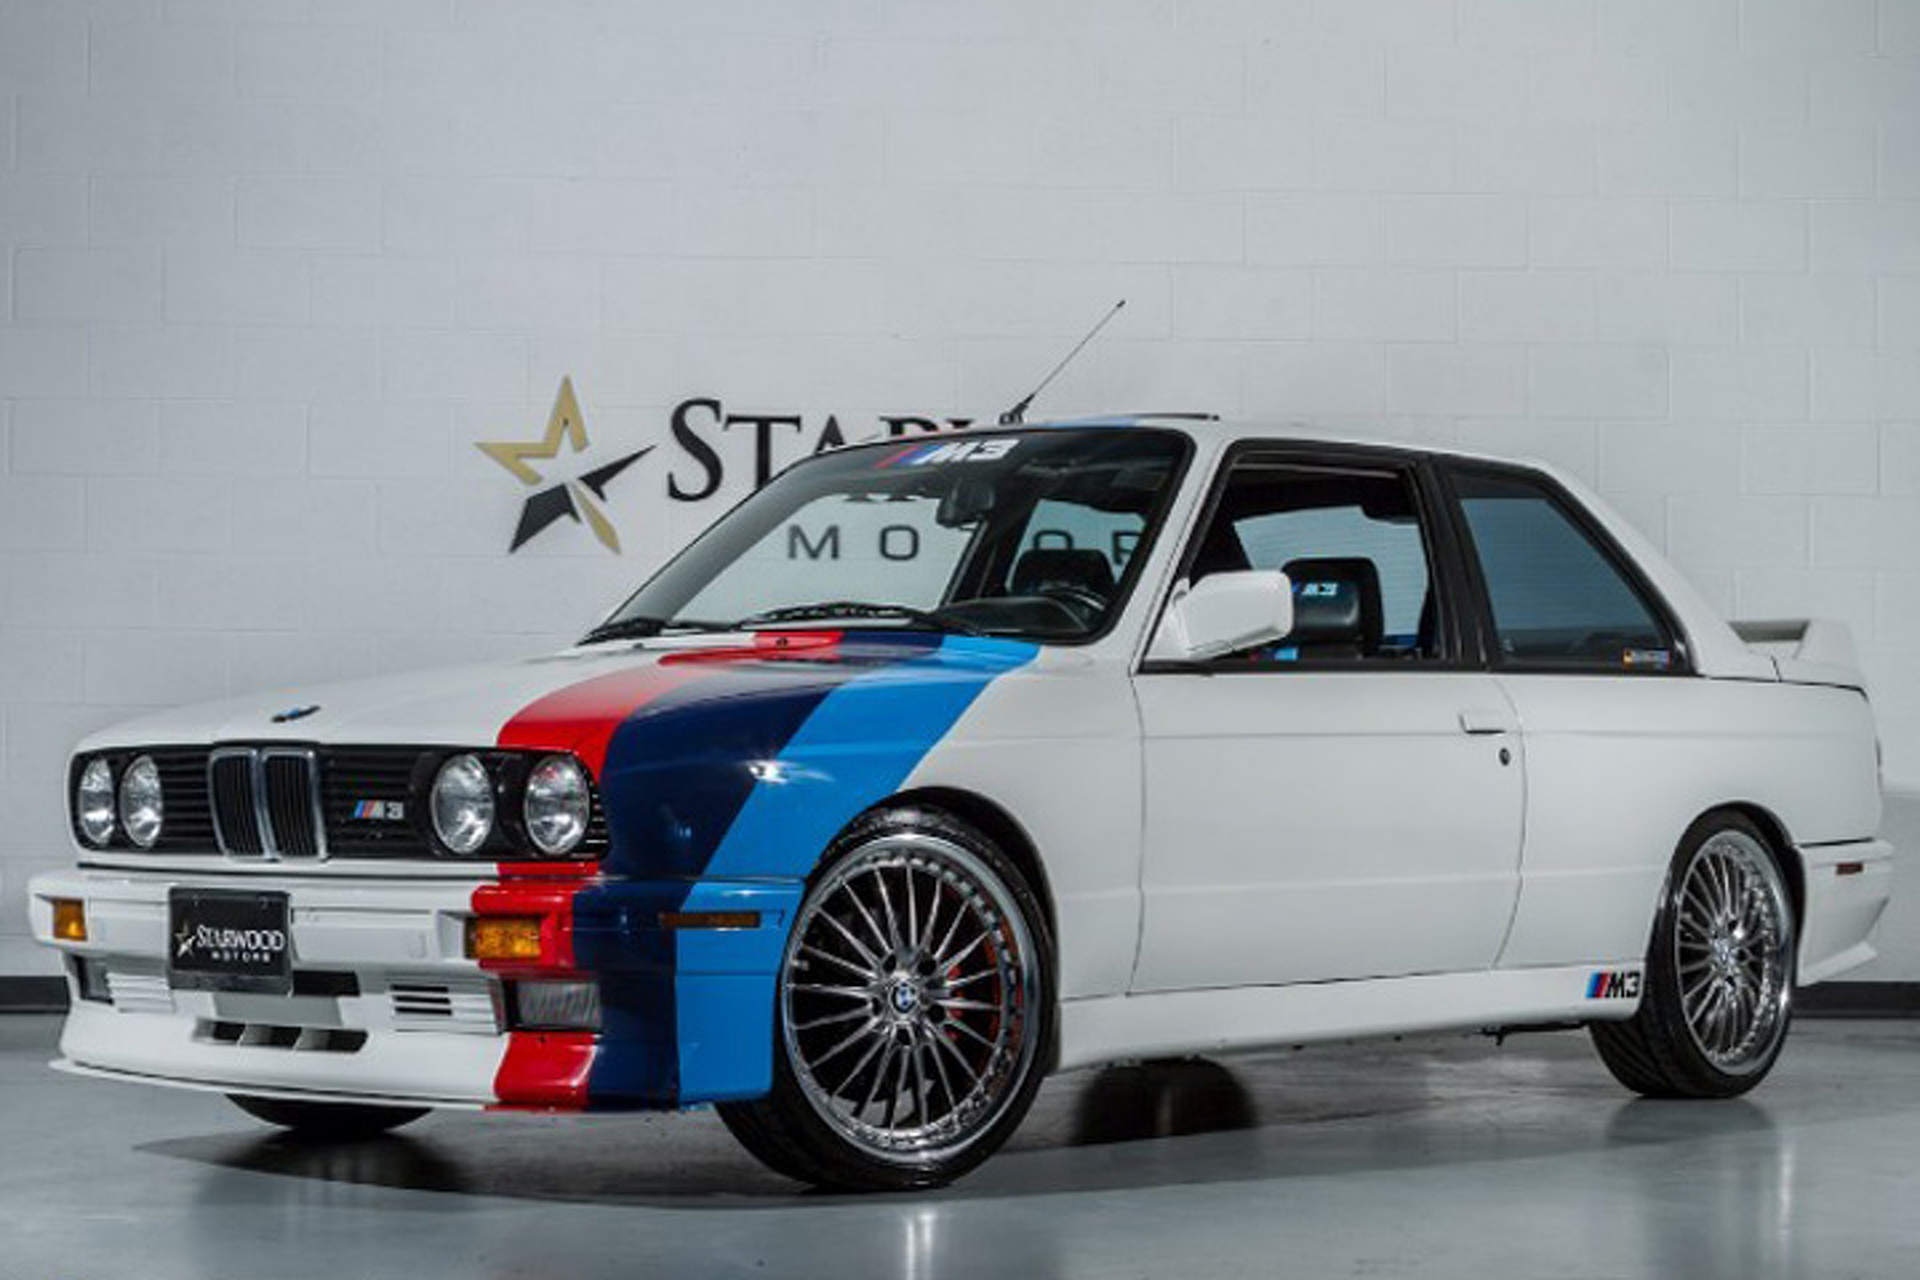 Buick GNX or BMW E30 M3: Which Would You Buy?